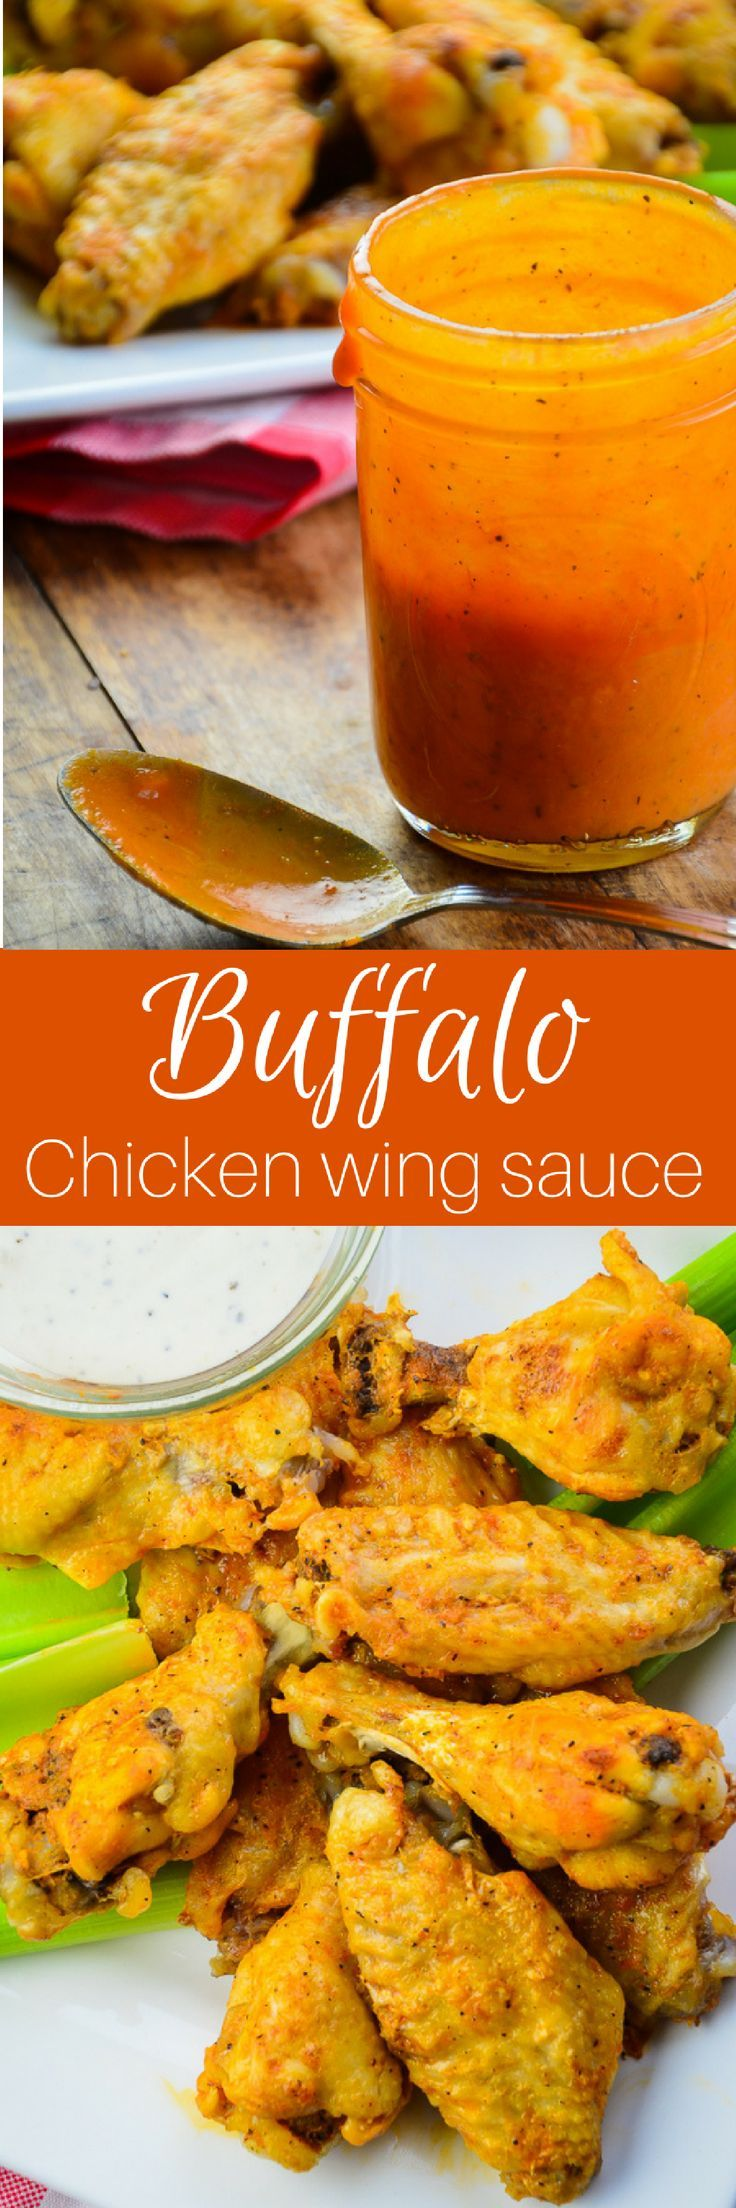 Buffalo Chicken Wings, they are found at nearly every super bowl party, pizza shop, and sports bar. This messy finger food is an upstate New York original, and easily made in a home kitchen.  via @homeinFLX